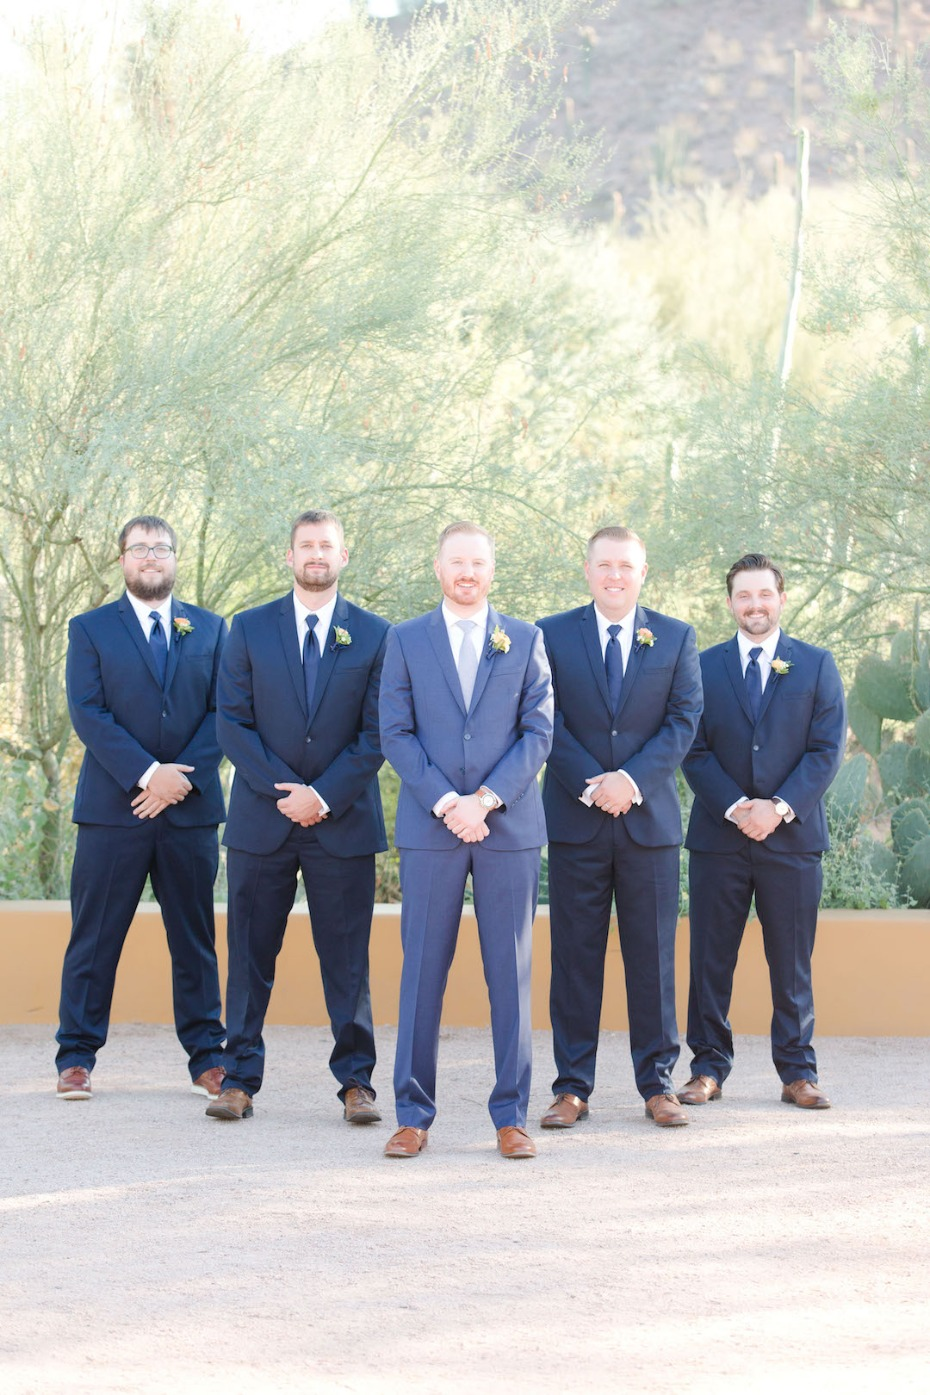 groom and his groomsmen in navy and royal blue